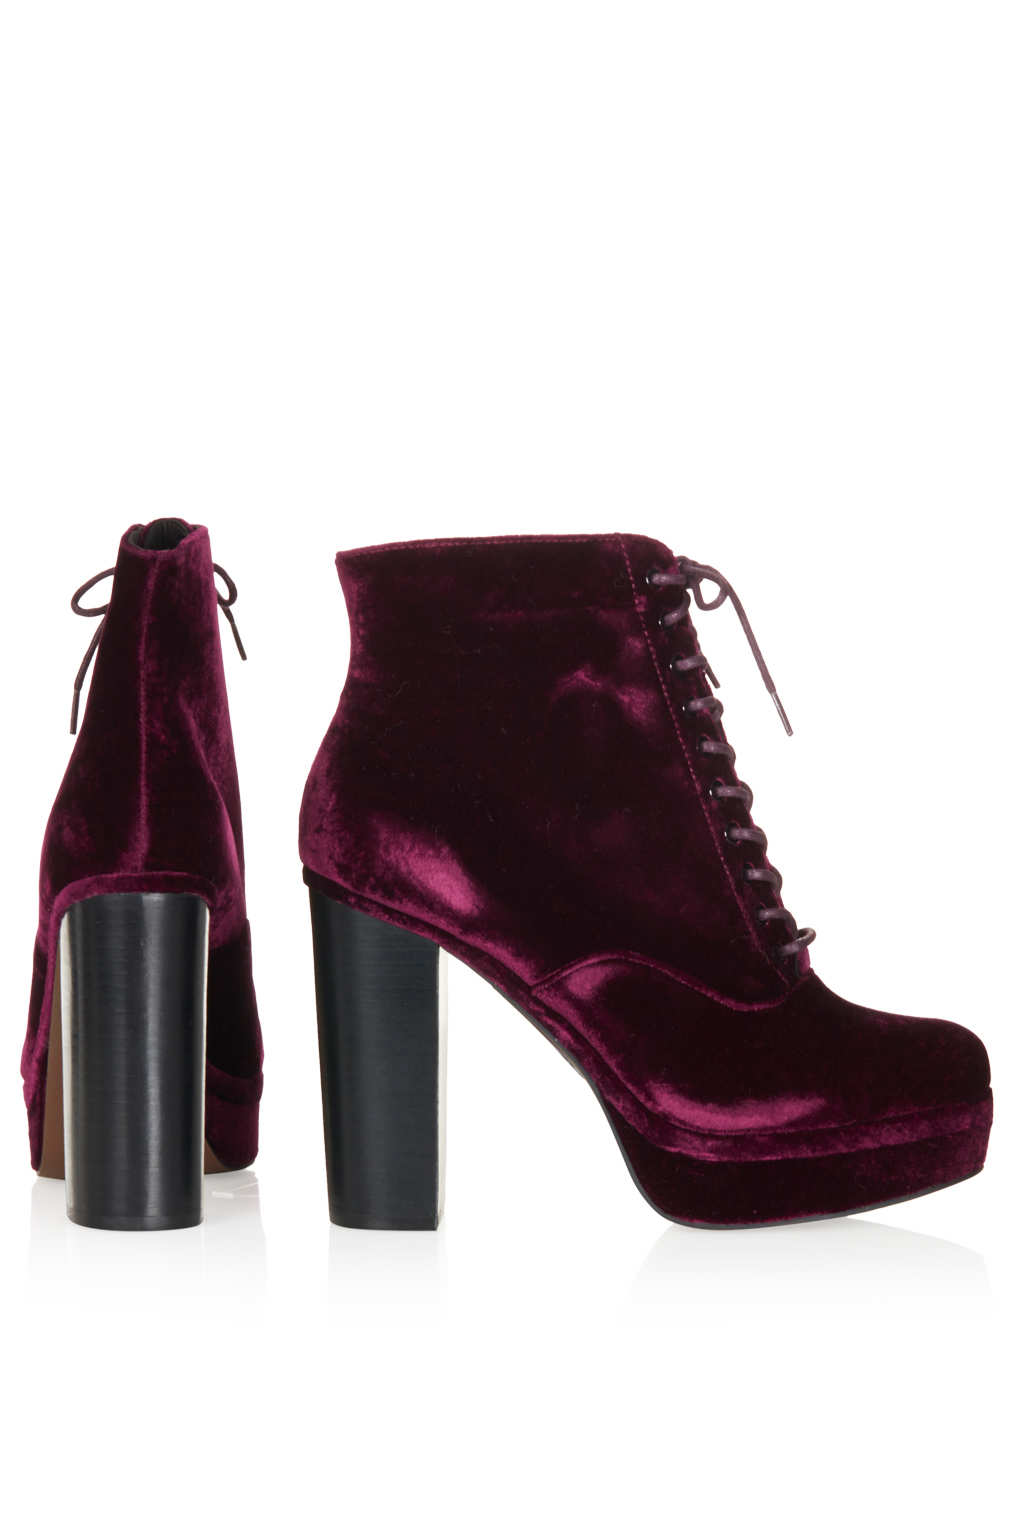 Topshop Ladies Shoes And Boots